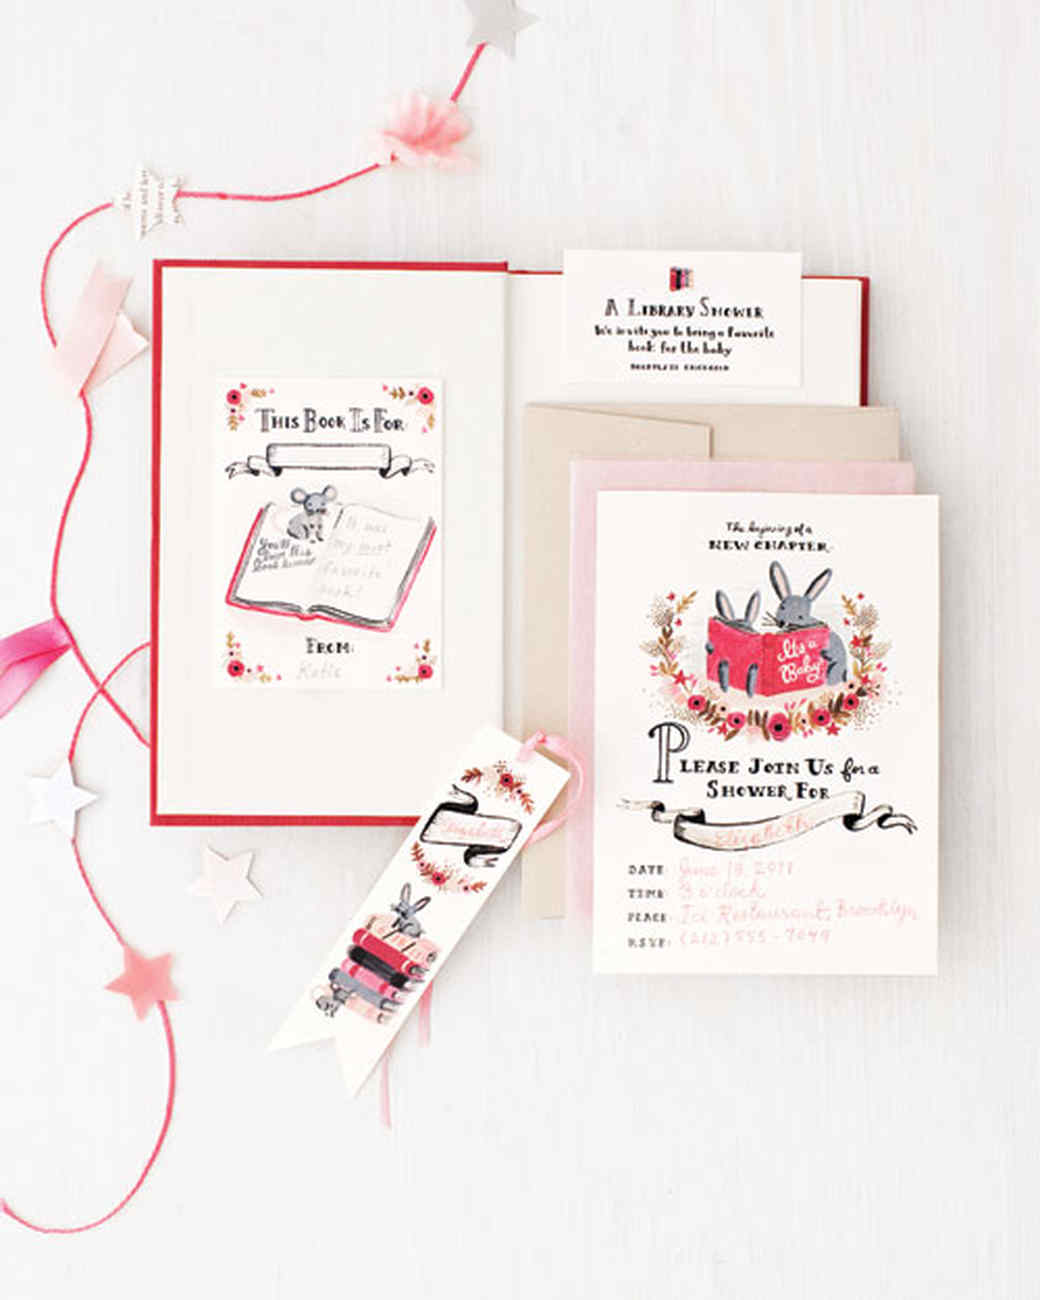 Invitations Clip Art and Templates | Martha Stewart